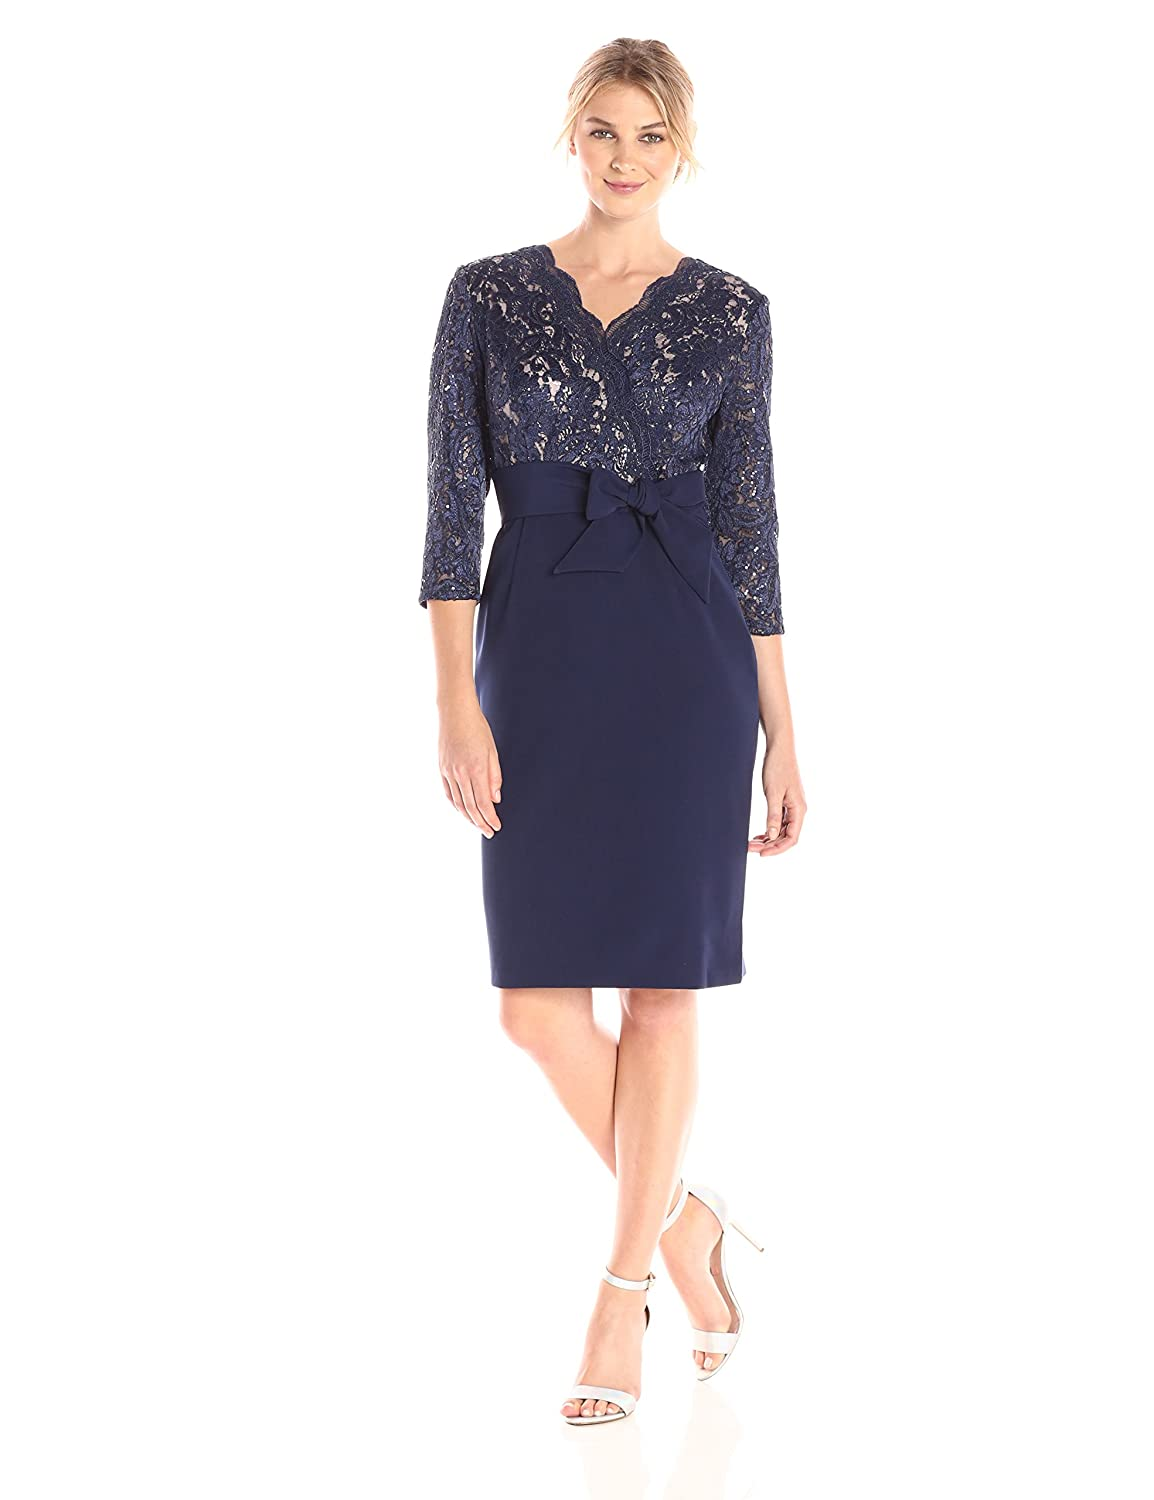 07a693cba4 Alex Evenings Women s Short Lace Bodice Dress with Bow (Petite and Regular  Sizes)